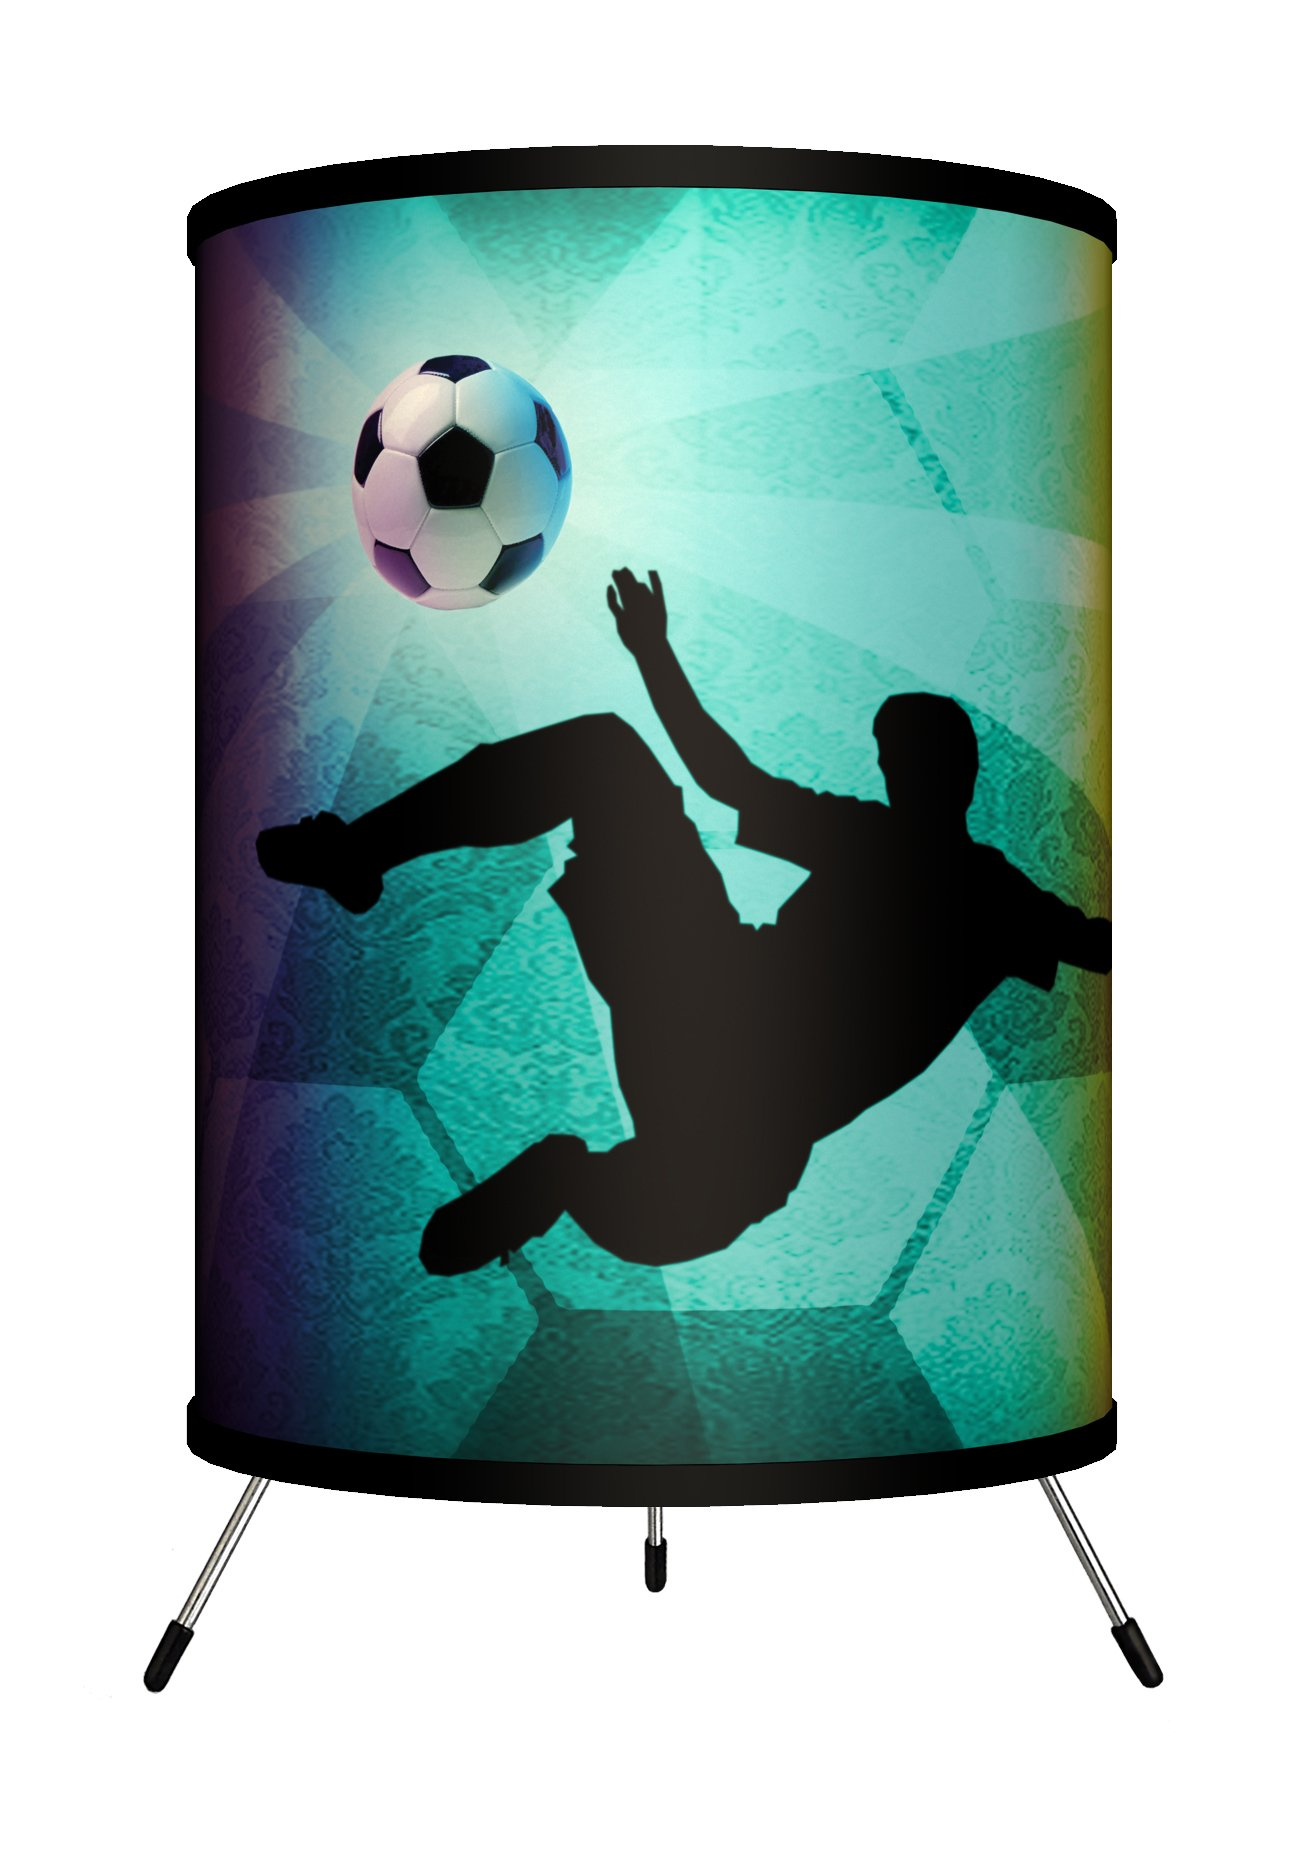 Lamp-In-A-Box TRI-SPO-SOCKI Sports - Soccer Kick Tripod Lamp, 14'' x 8'' x 8''